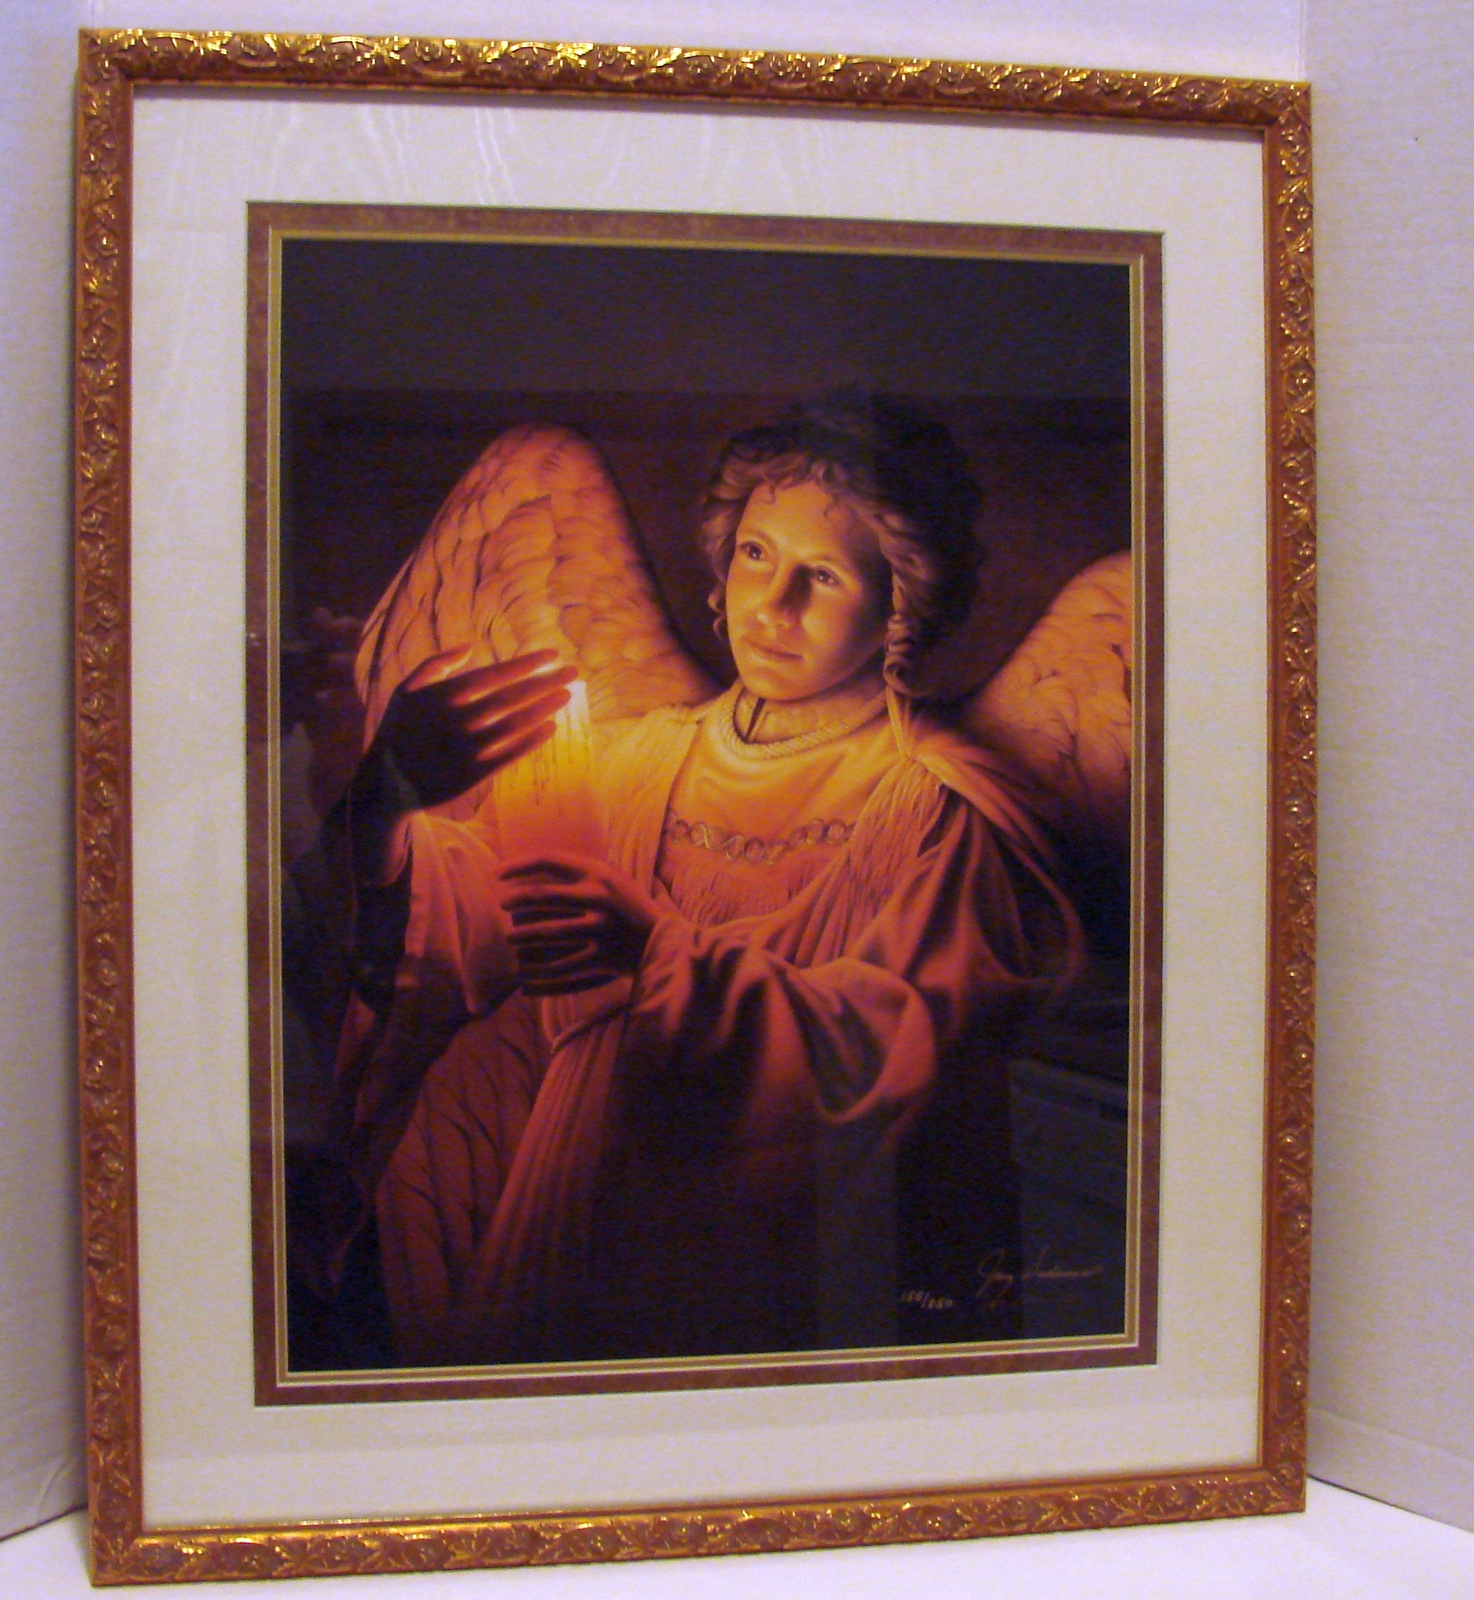 Primary image for Jerry Gadamus Angel of Light Signed Limited Ed Framed, Matted